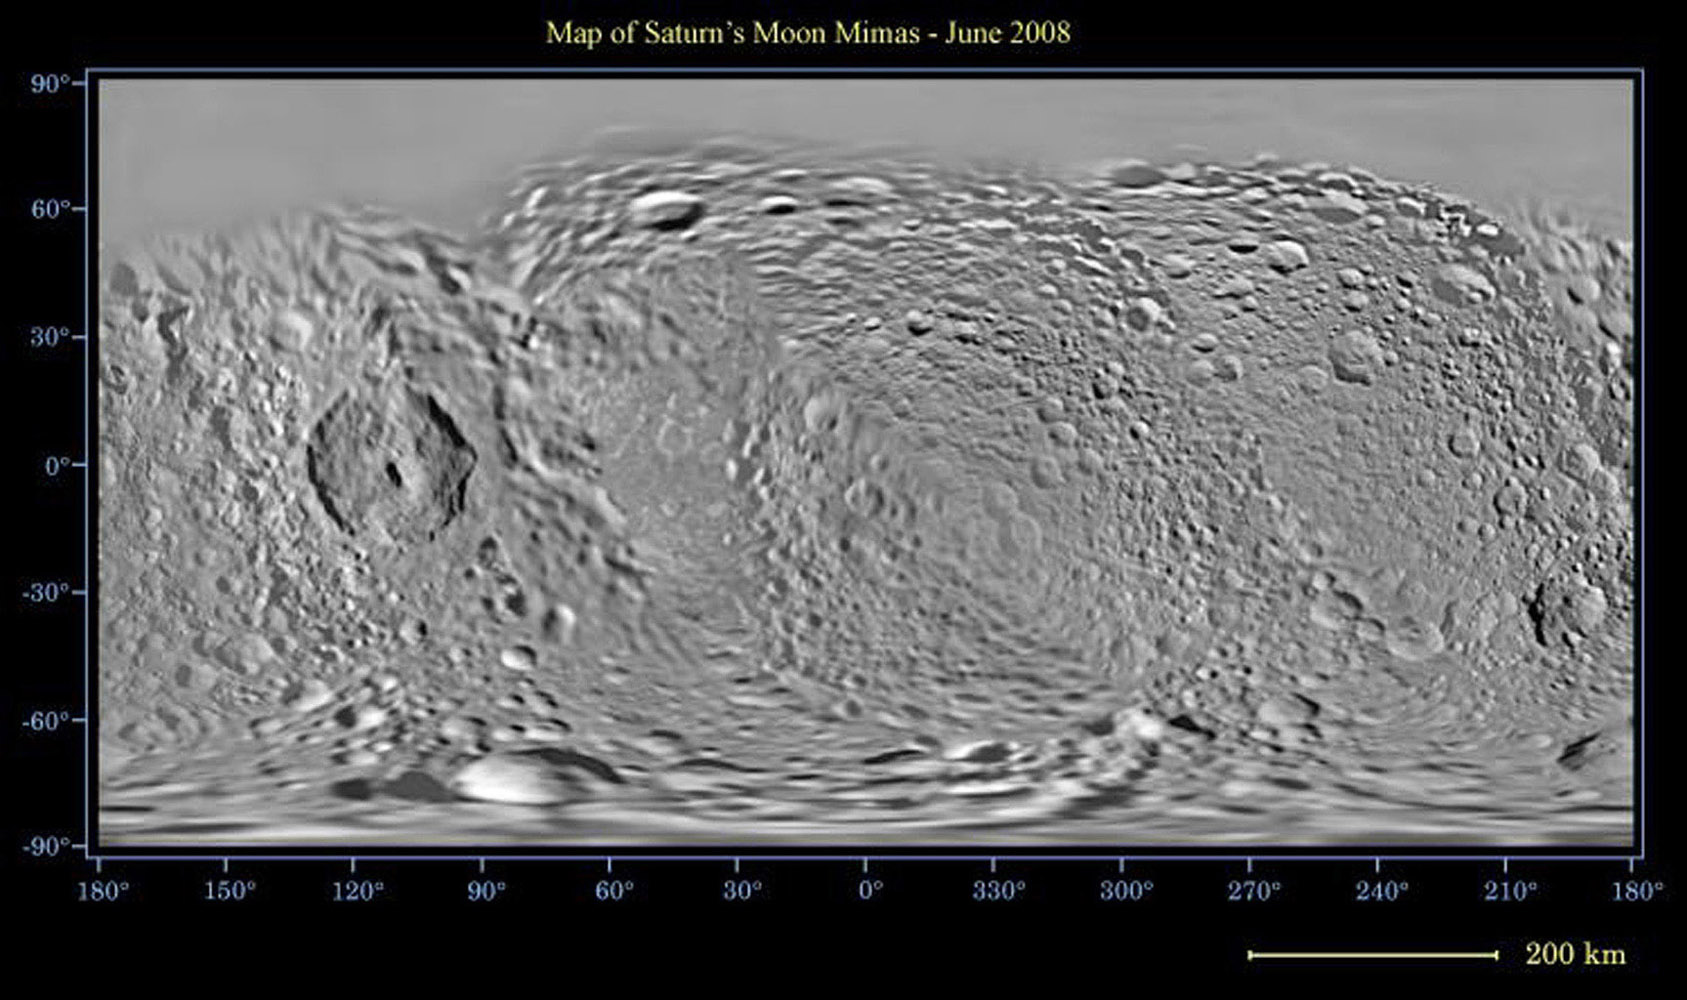 This global map of Saturn's moon Mimas was created using images taken NASA's Cassini spacecraft flybys, with Voyager images filling in the gaps in Cassini's coverage.